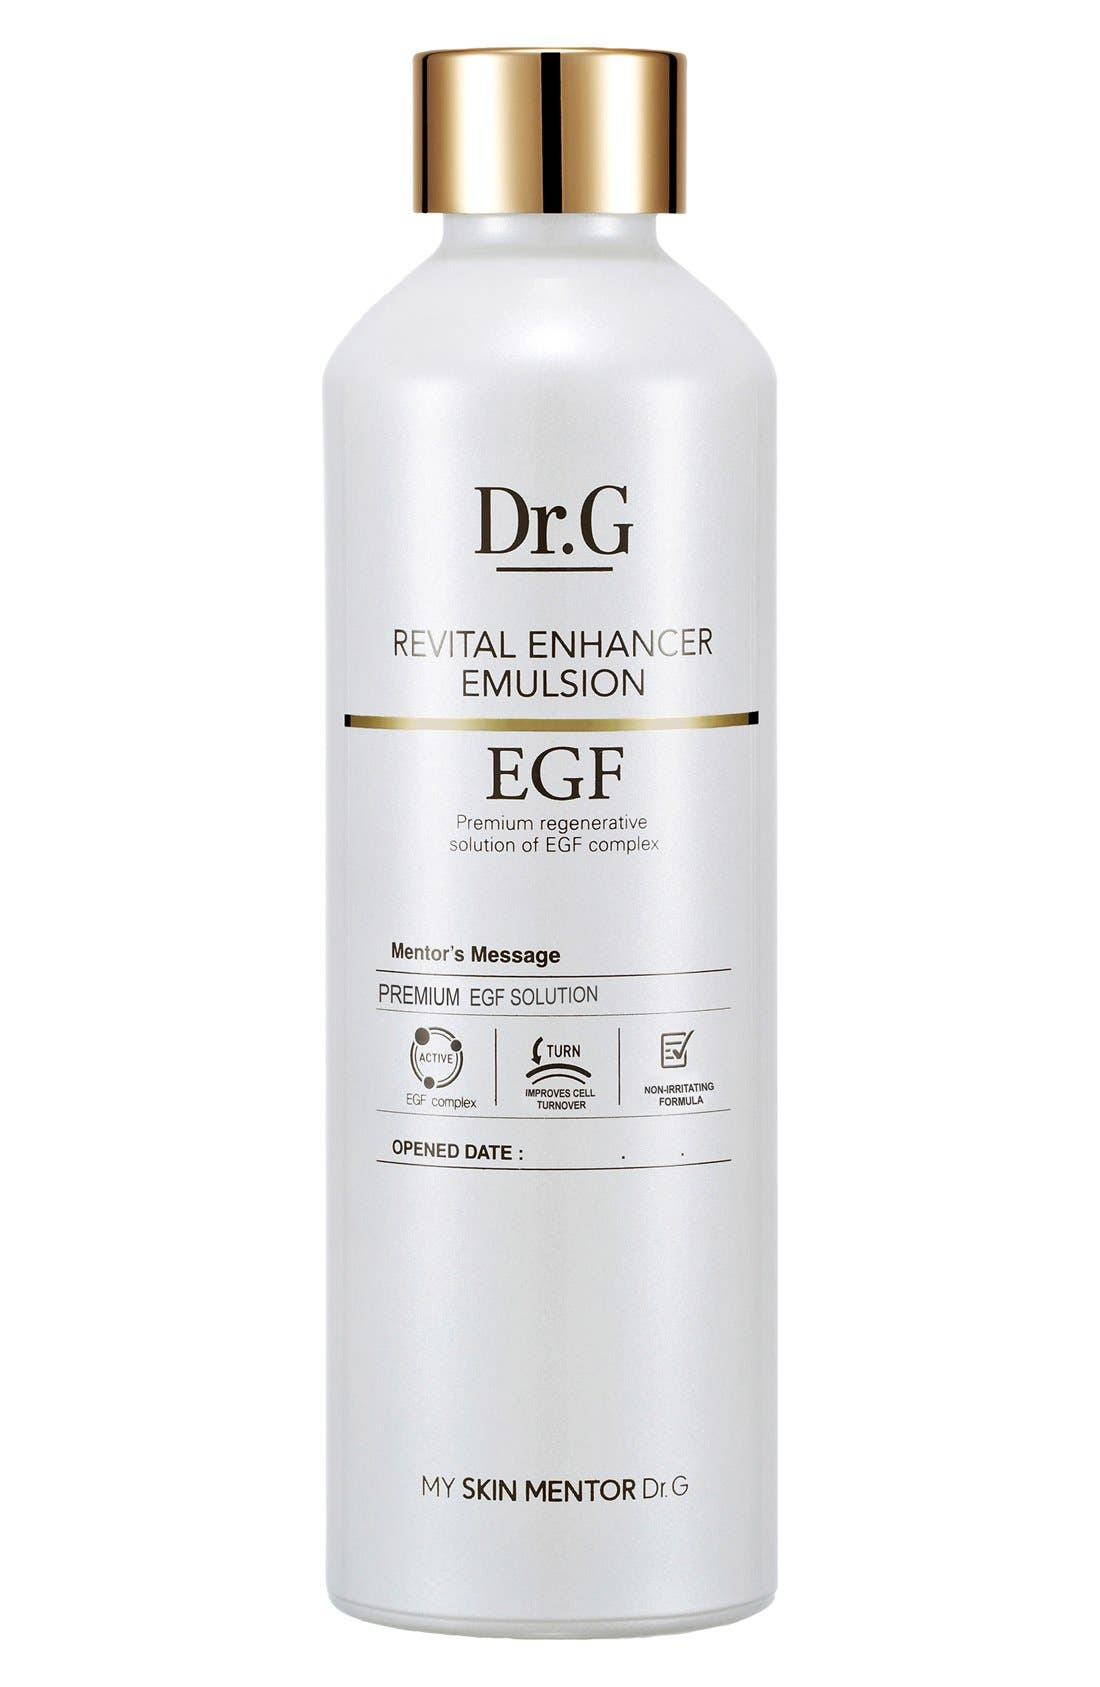 My Skin Mentor Dr. G Beauty Revital Enhancer Emulsion